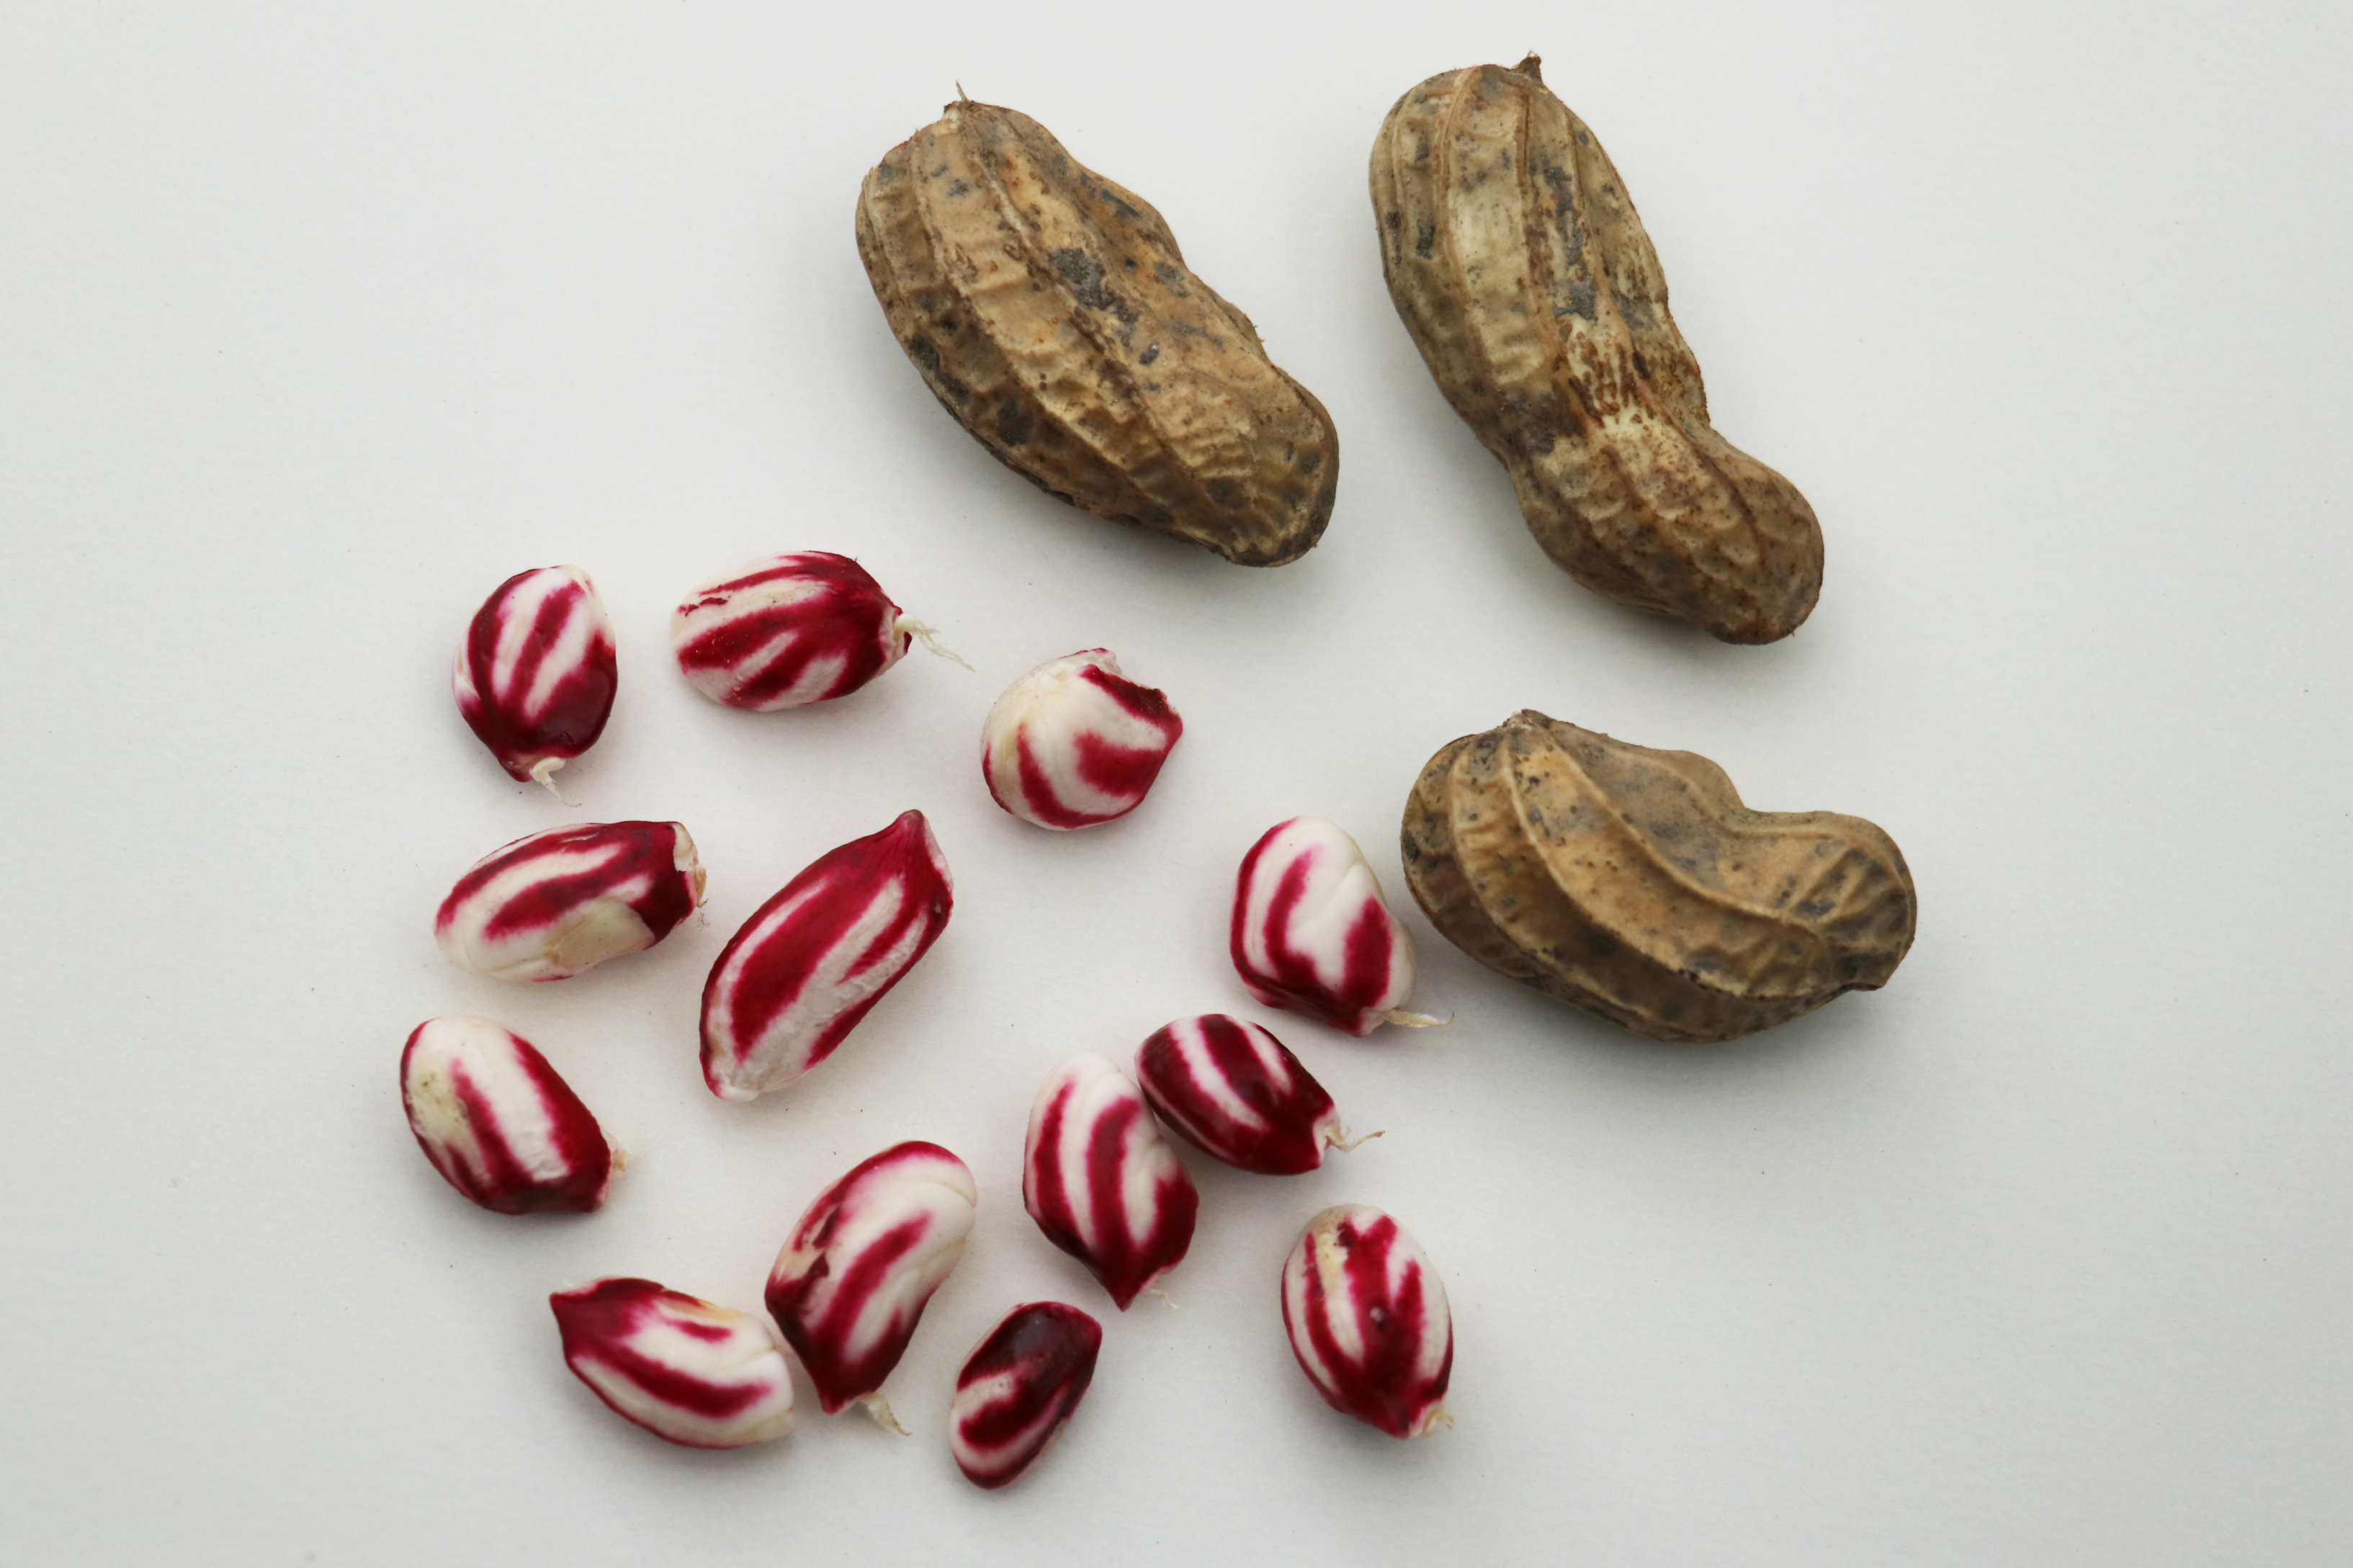 The variety Justbehappy produces striped nuts (Lubera/PA)